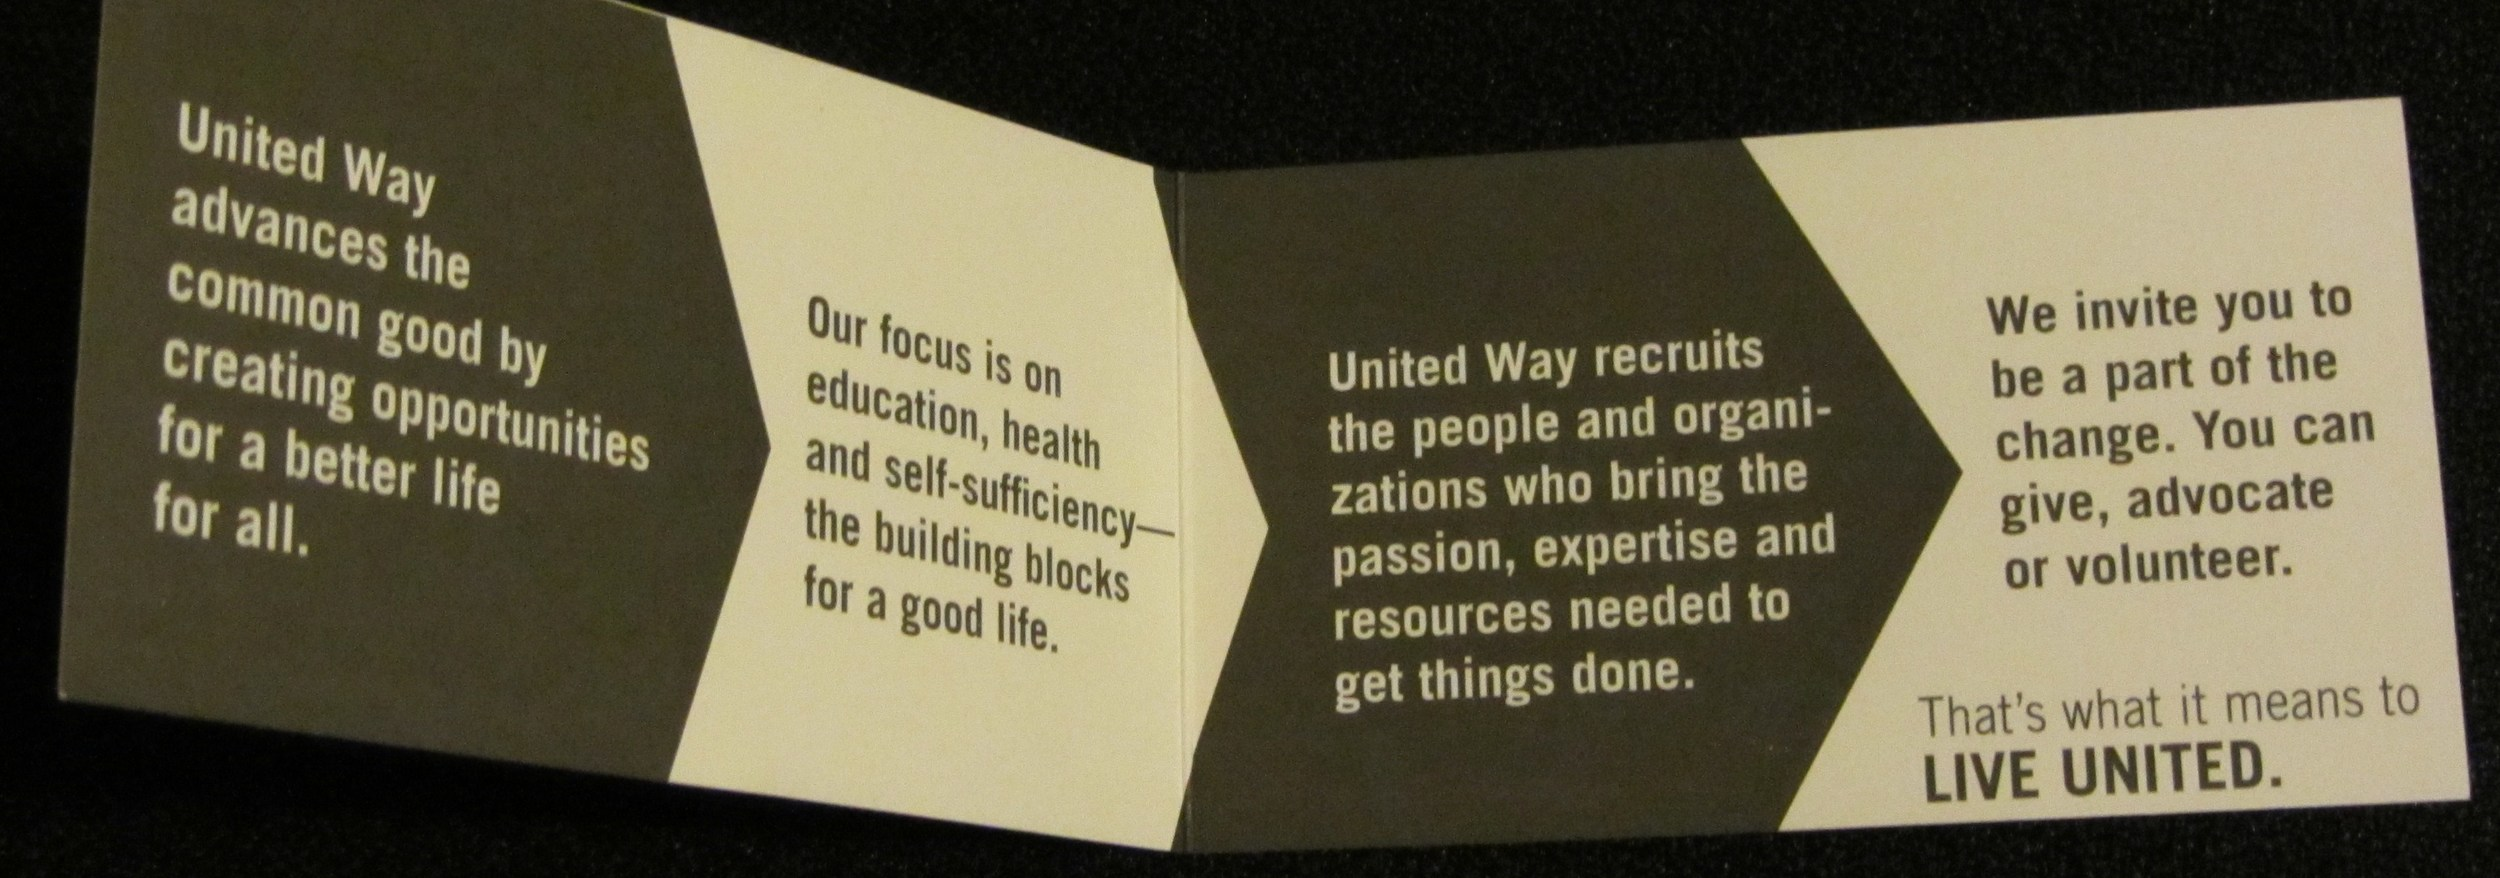 UW of Midland County - elevator speech on business card - inside of card.JPG